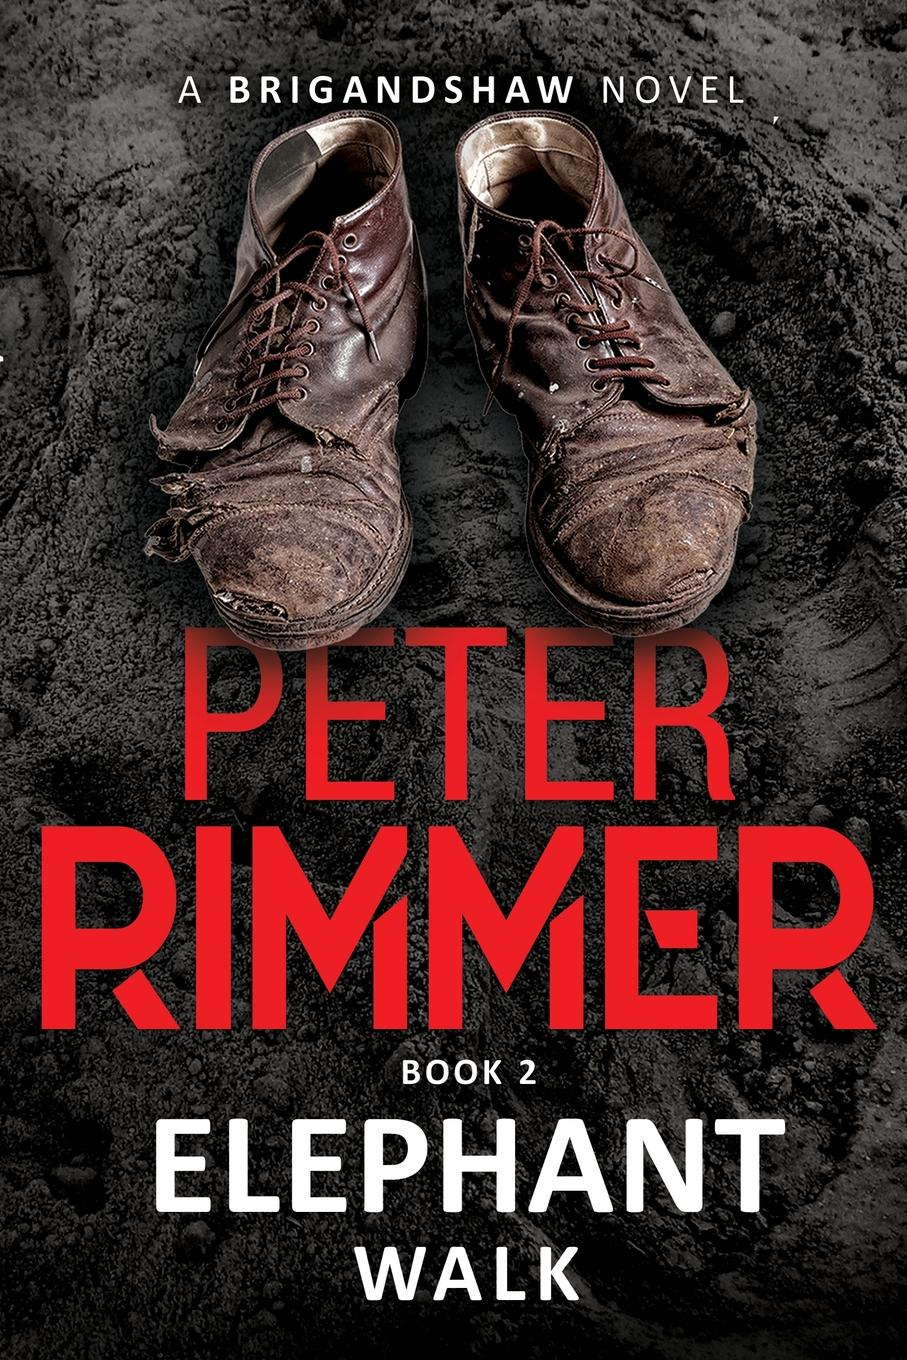 Peter Rimmer Elephant Walk. The Brigandshaw Chronicles Book 2